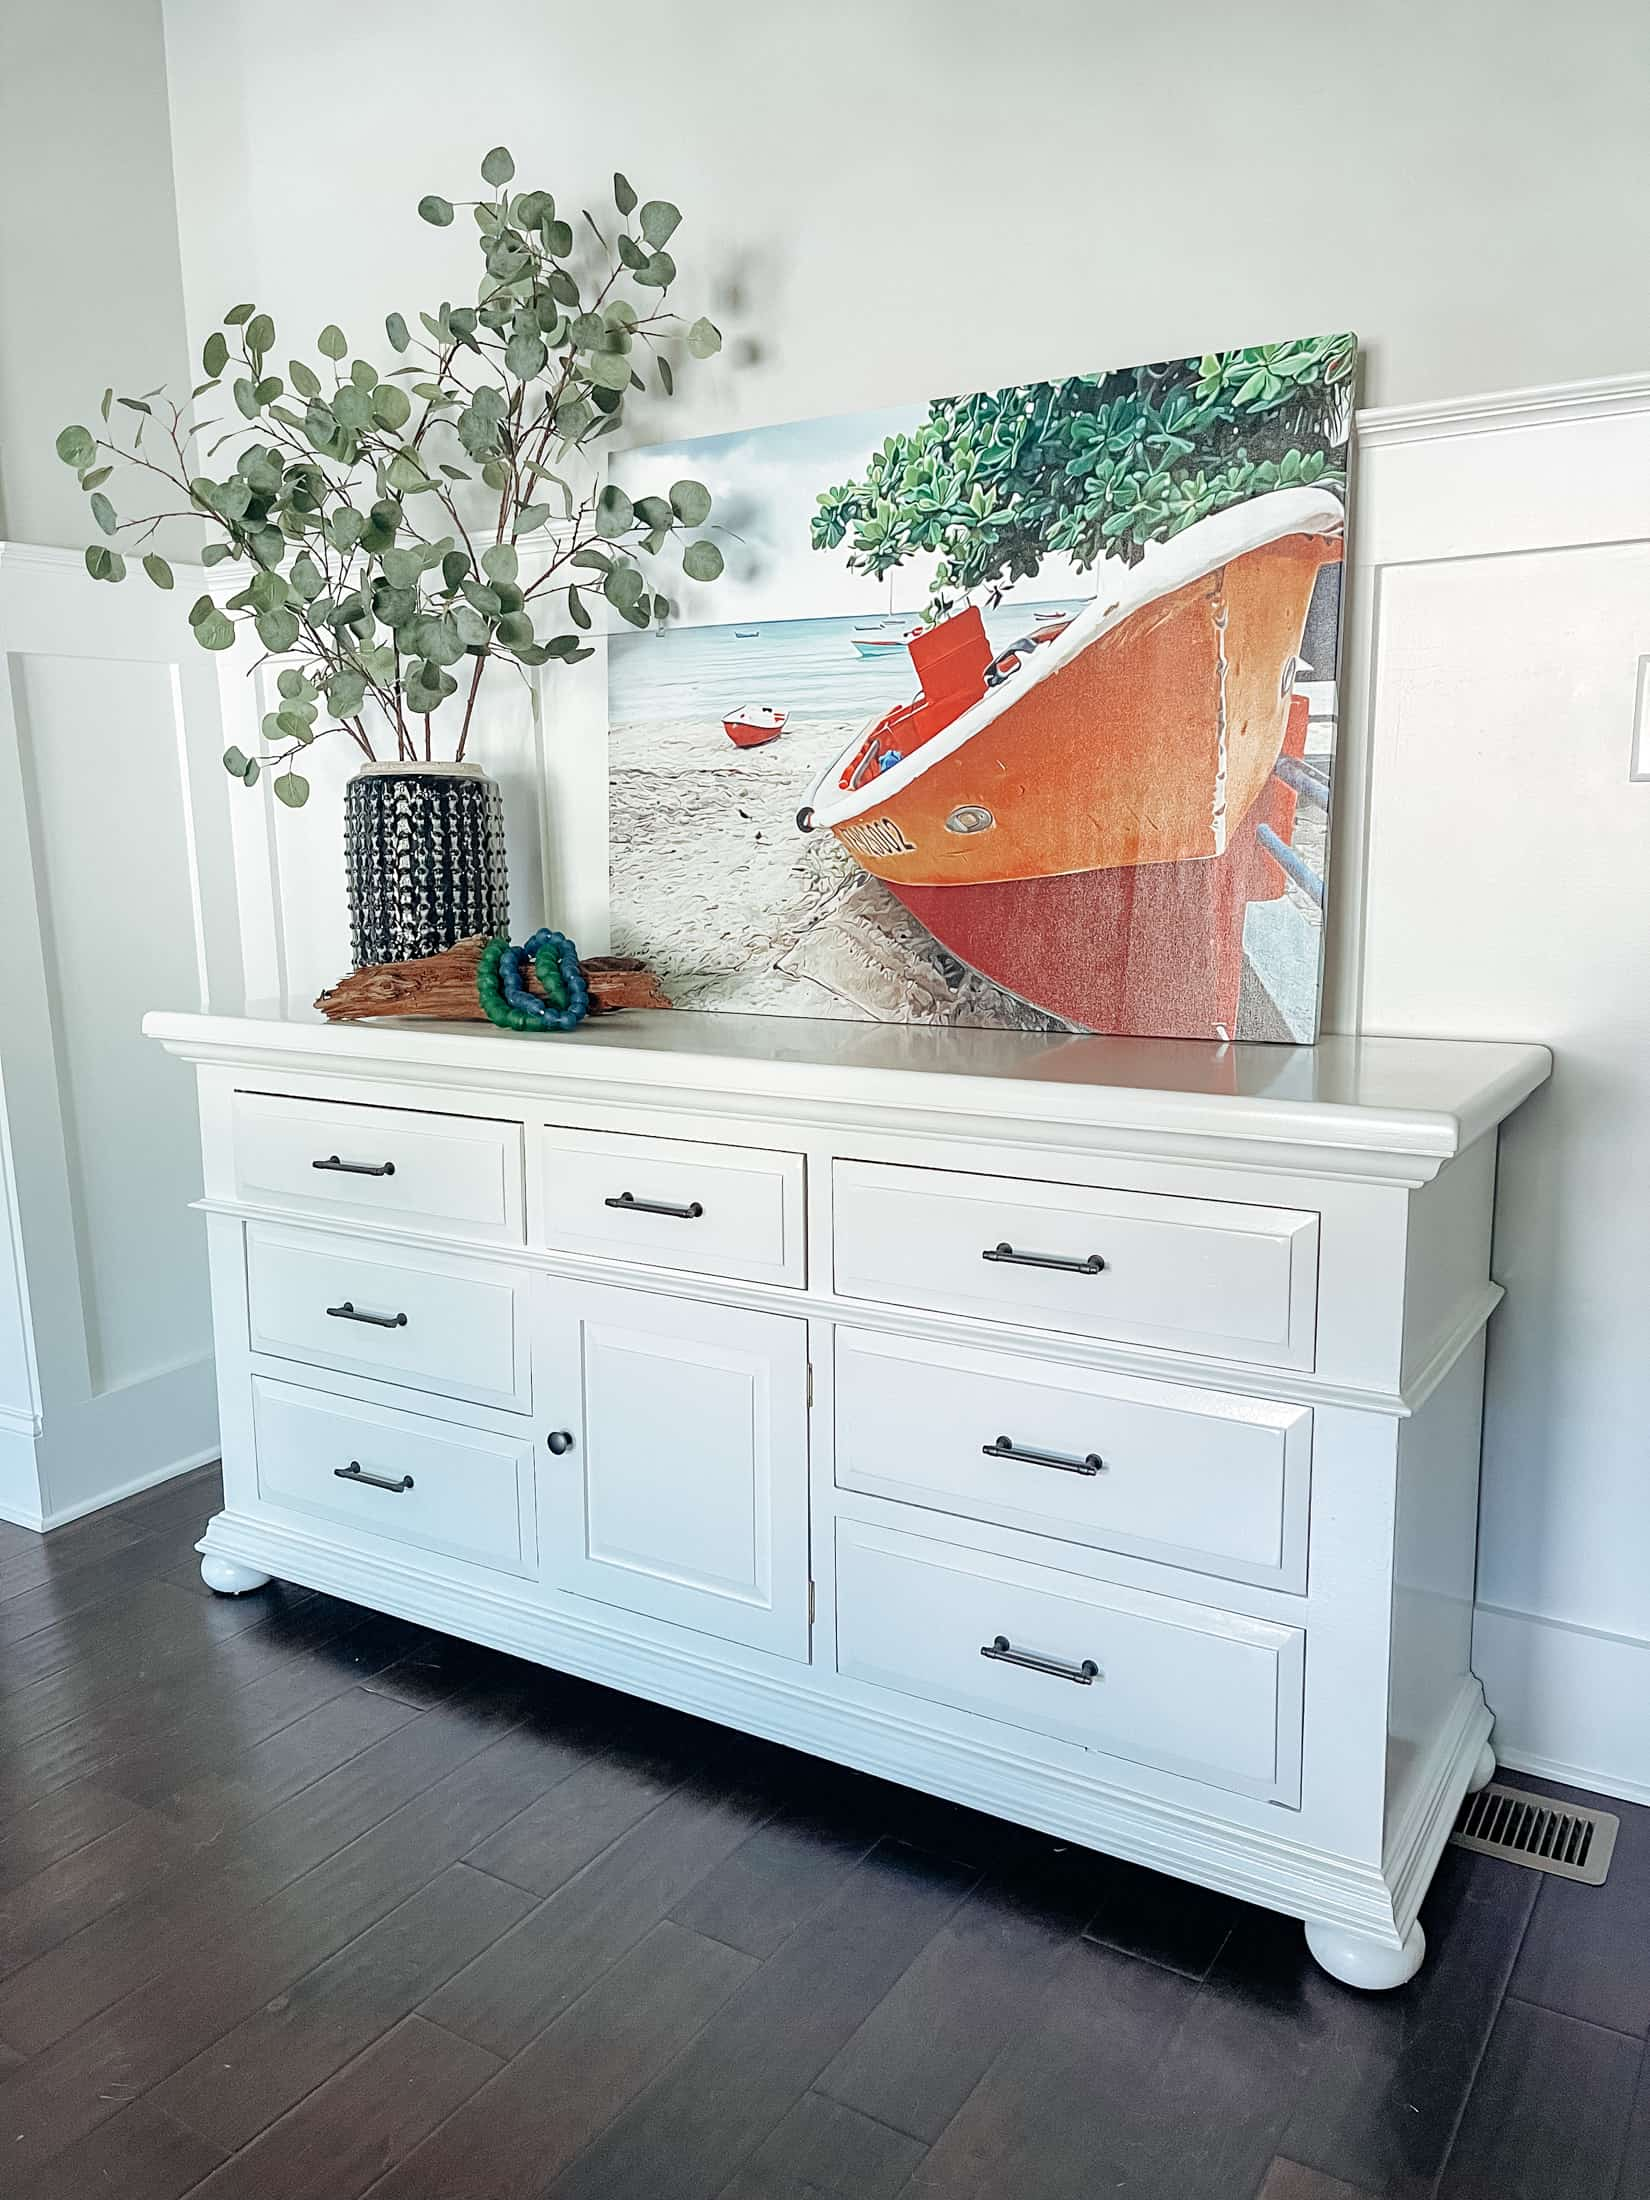 A vintage dresser gets new life with a coat of paint